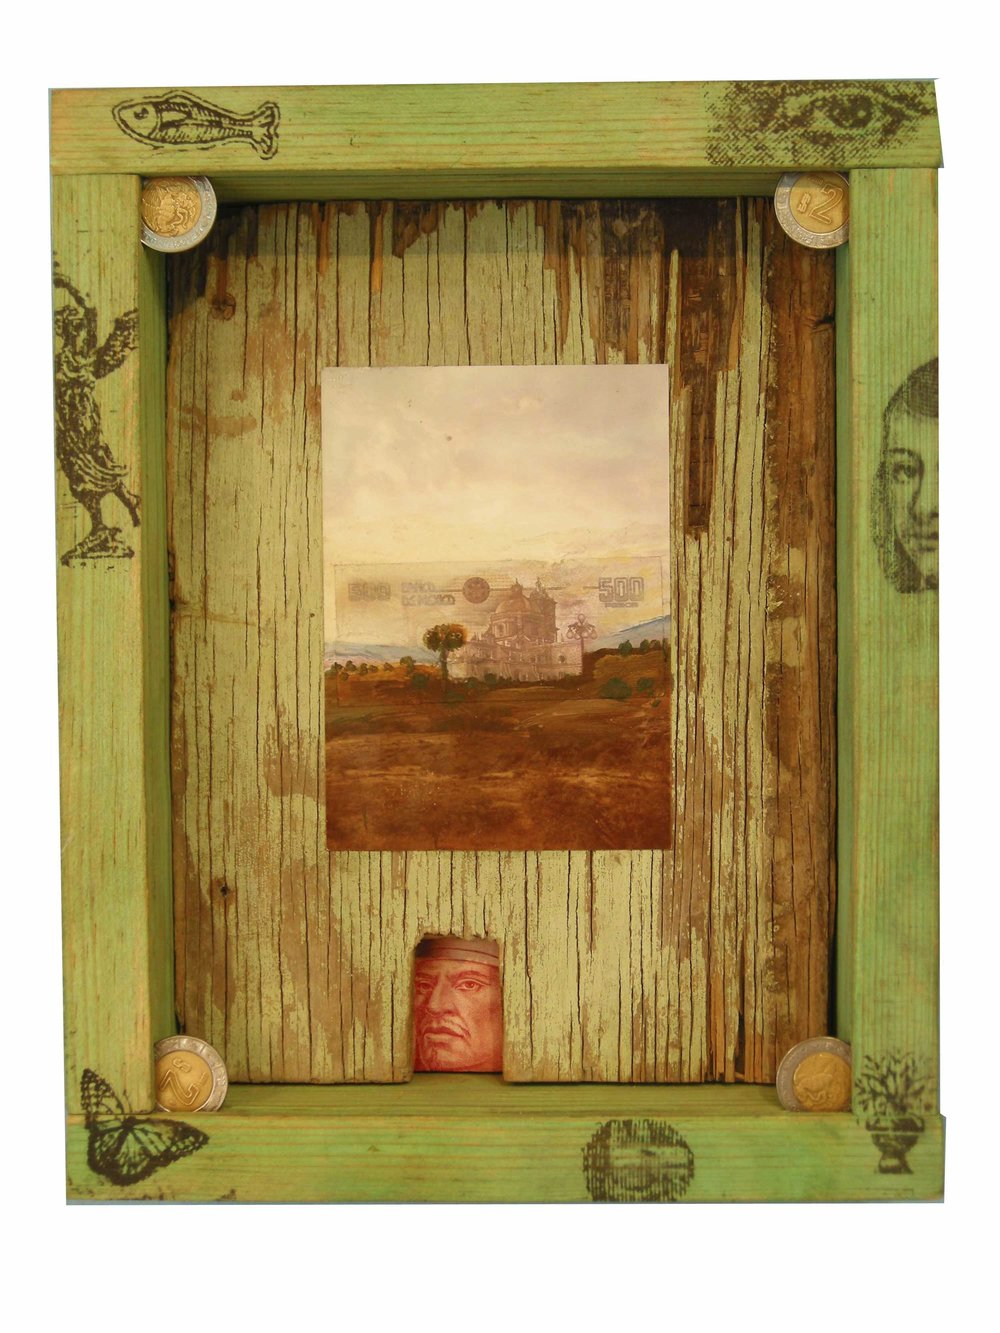 LANDSCAPE PAINTING  Collage and Money in Wooden Box 26 x 29 cm |2009  A comment on the value of land, and the value of art.    SOLD